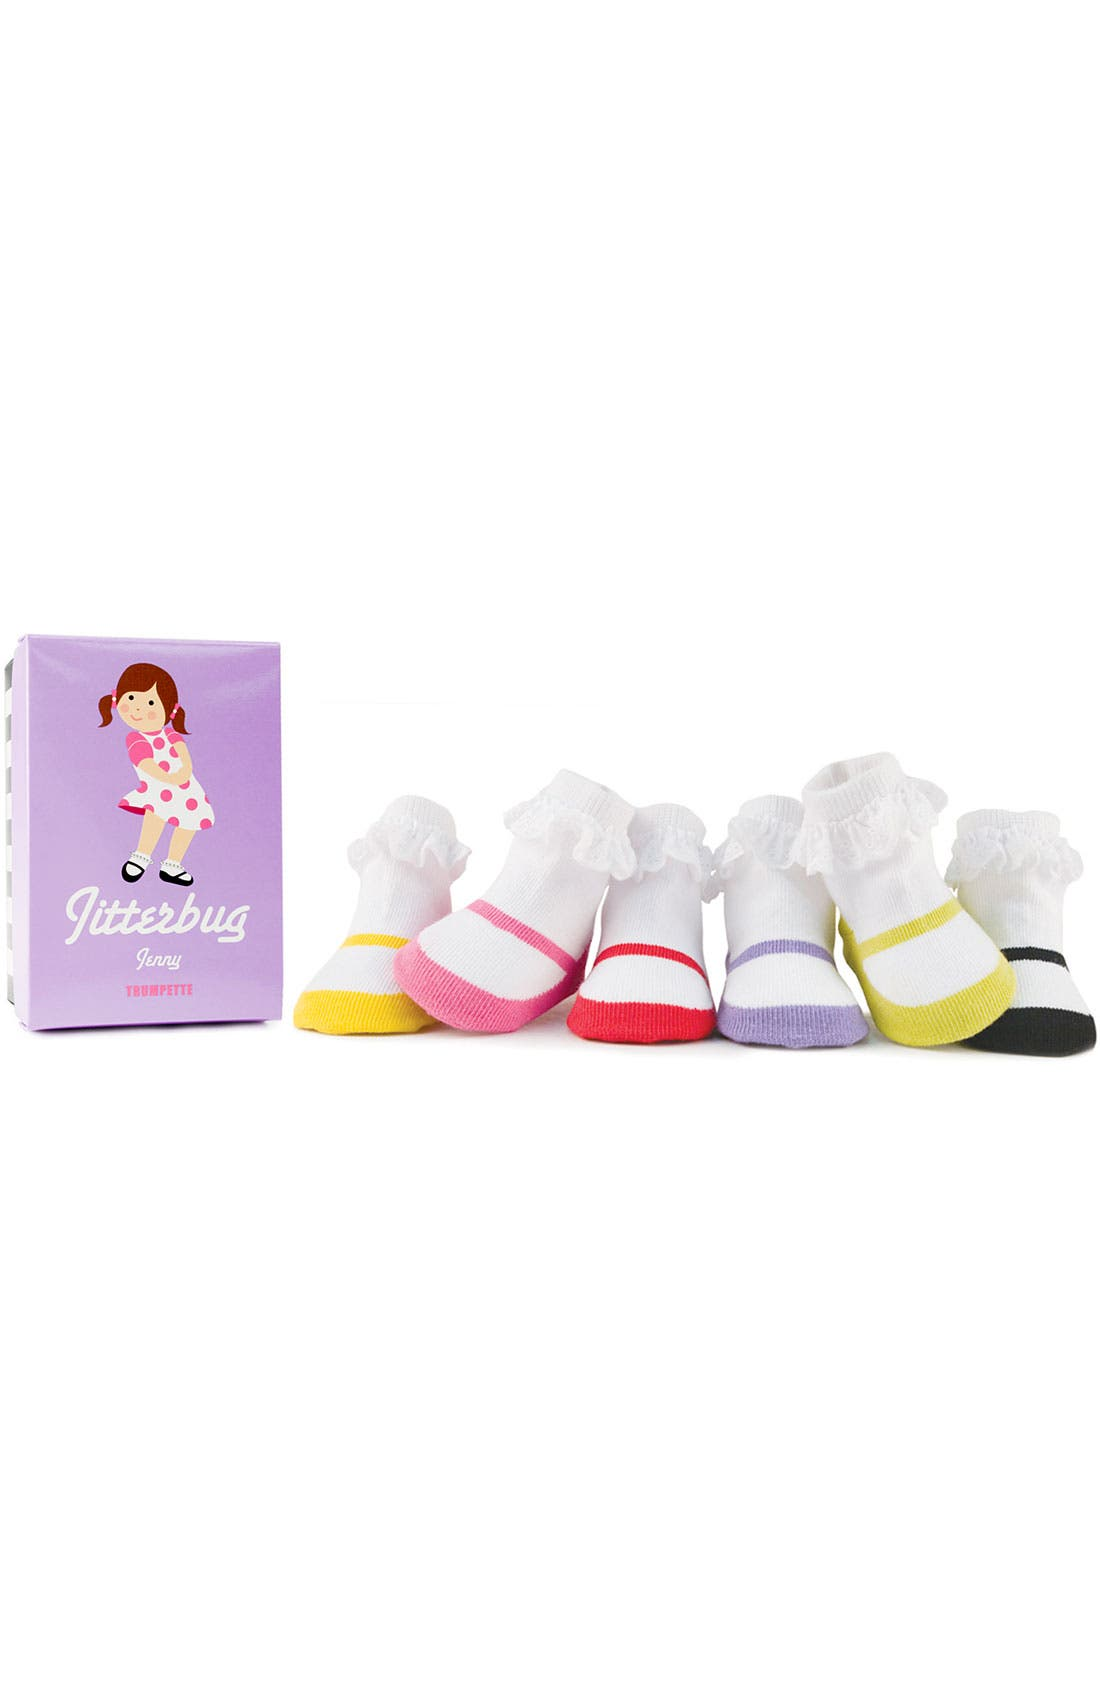 Main Image - Trumpette 'Jitterbug' Socks (6-Pack) (Infant)